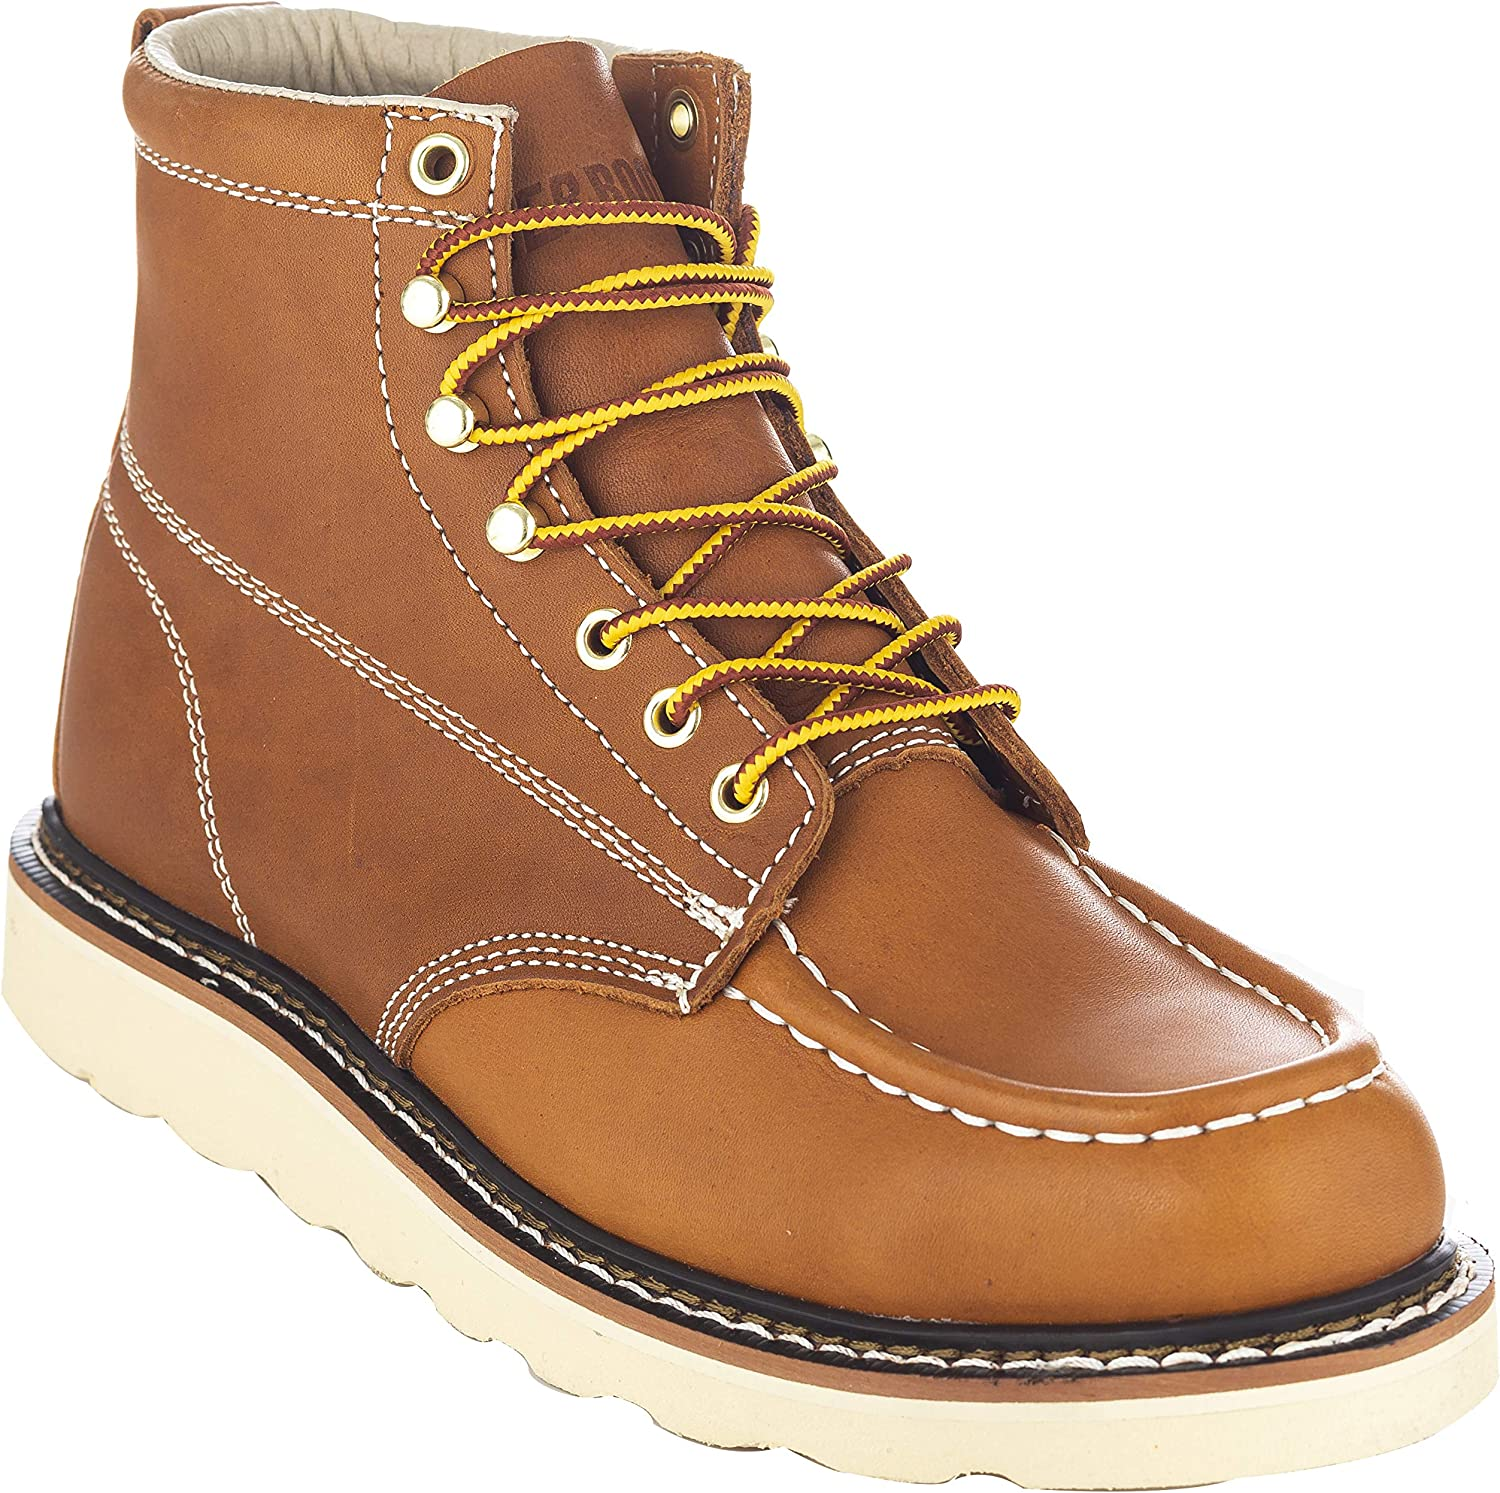 "EVER BOOTS ""Weldor Men's Moc Toe Construction Work Boots Wedge Soft Toe Light Weight"